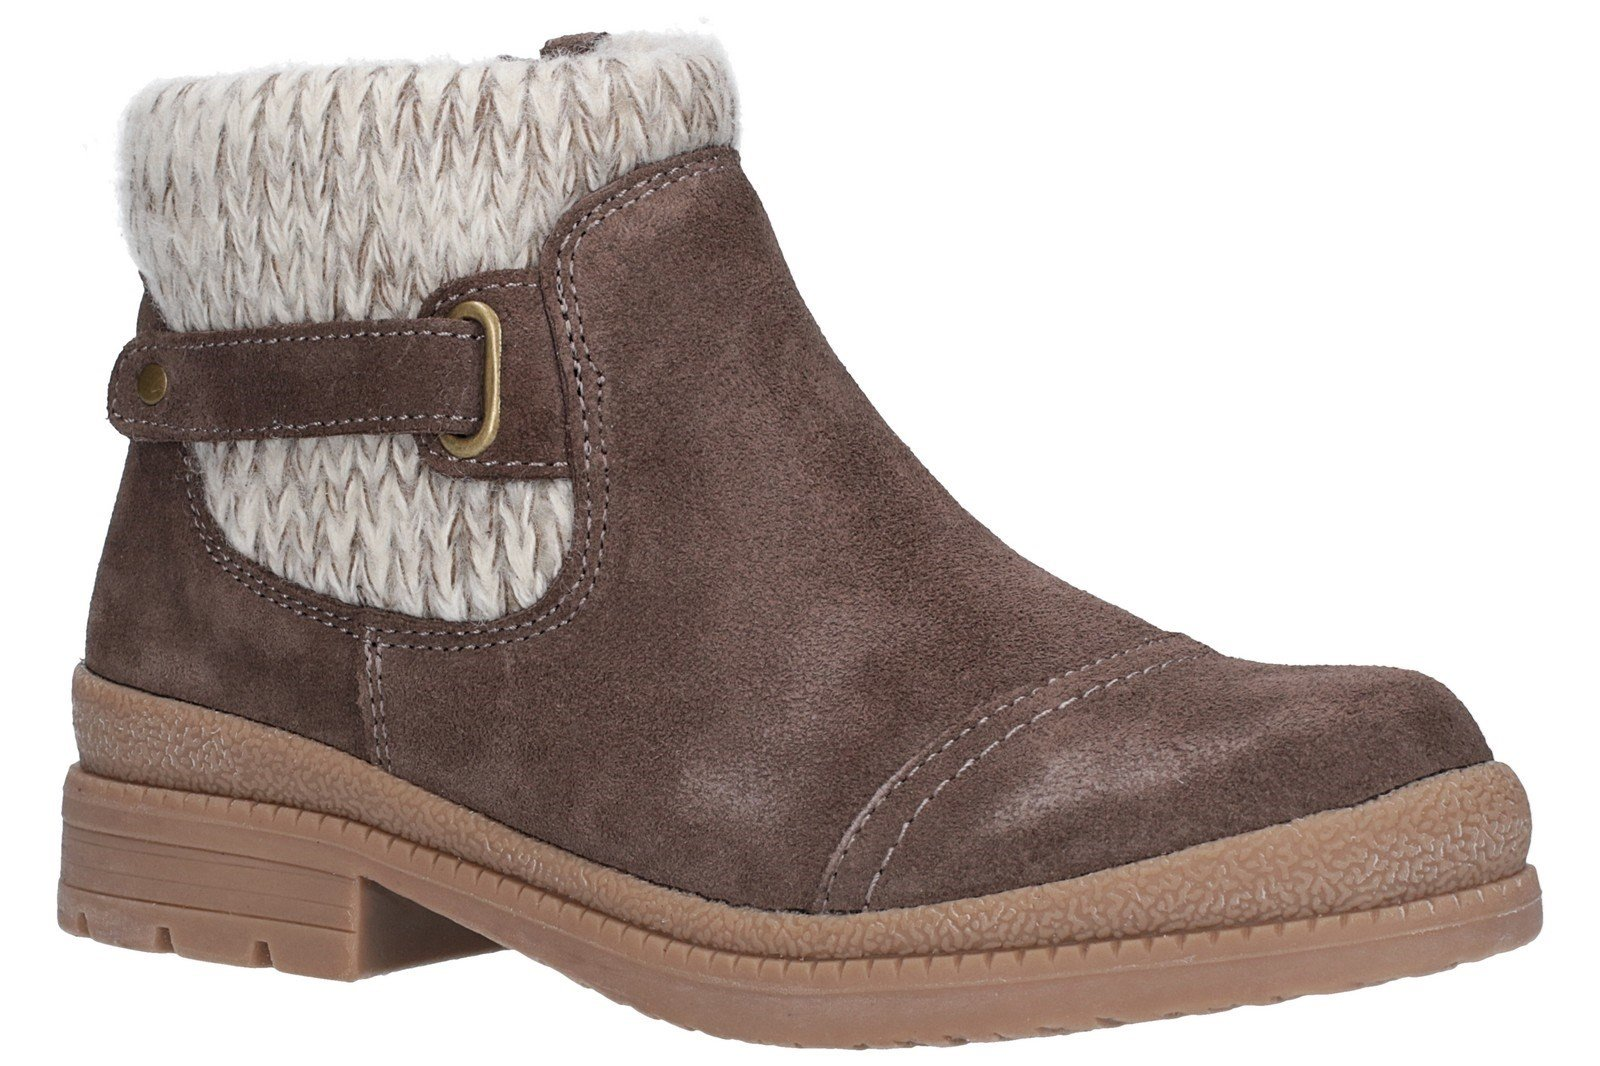 Fleet & Foster Women's Rummy Ankle Boot Brown 27146-45607 - Taupe 3